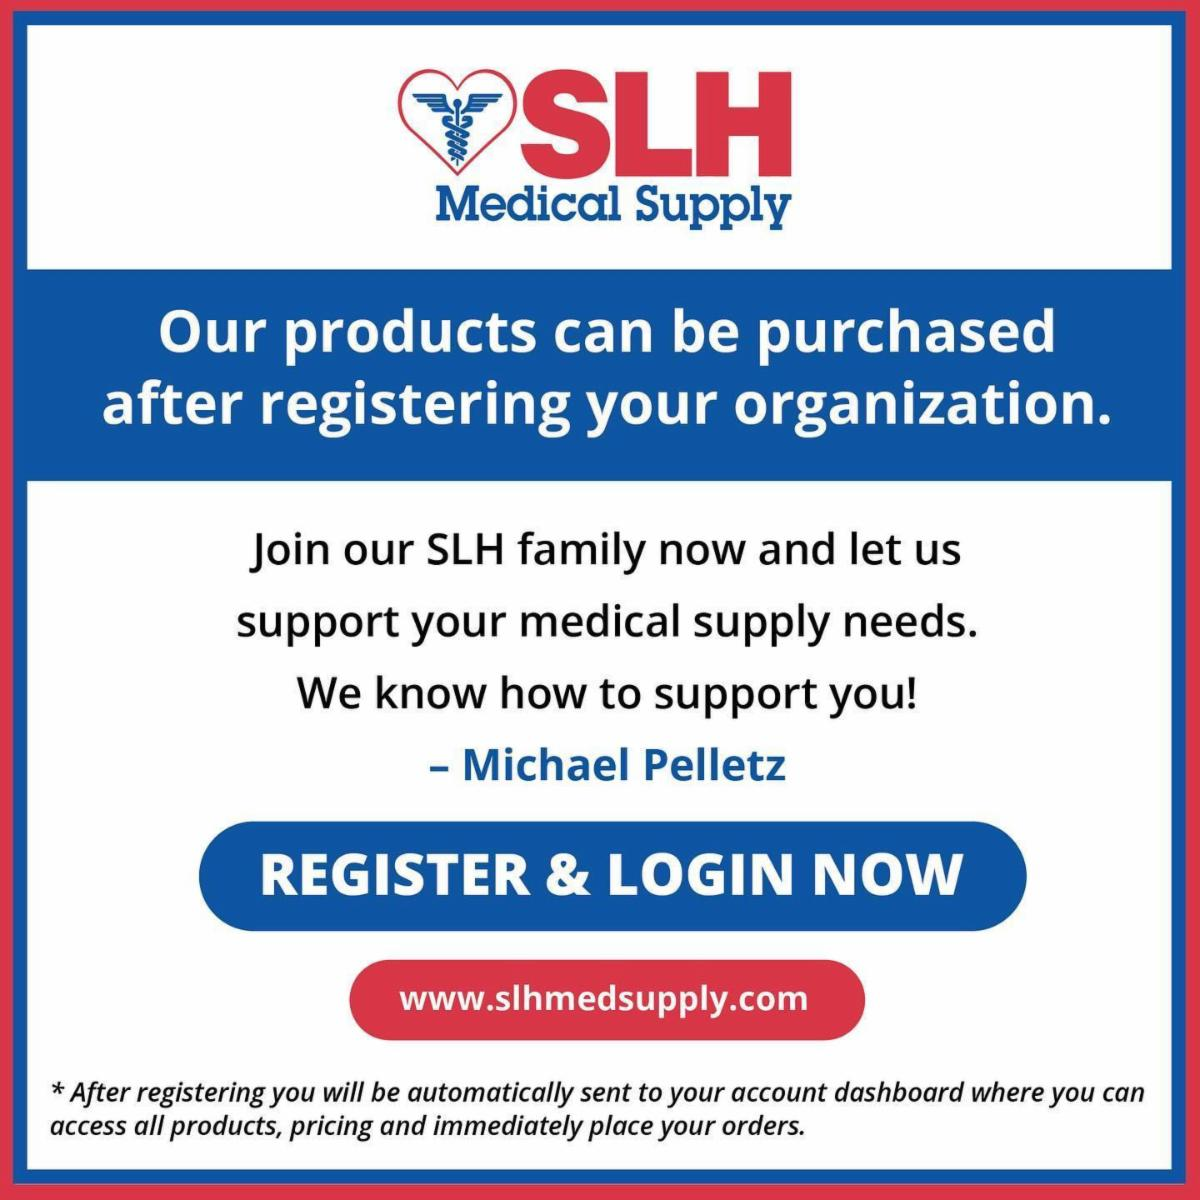 SLH Medical Supply